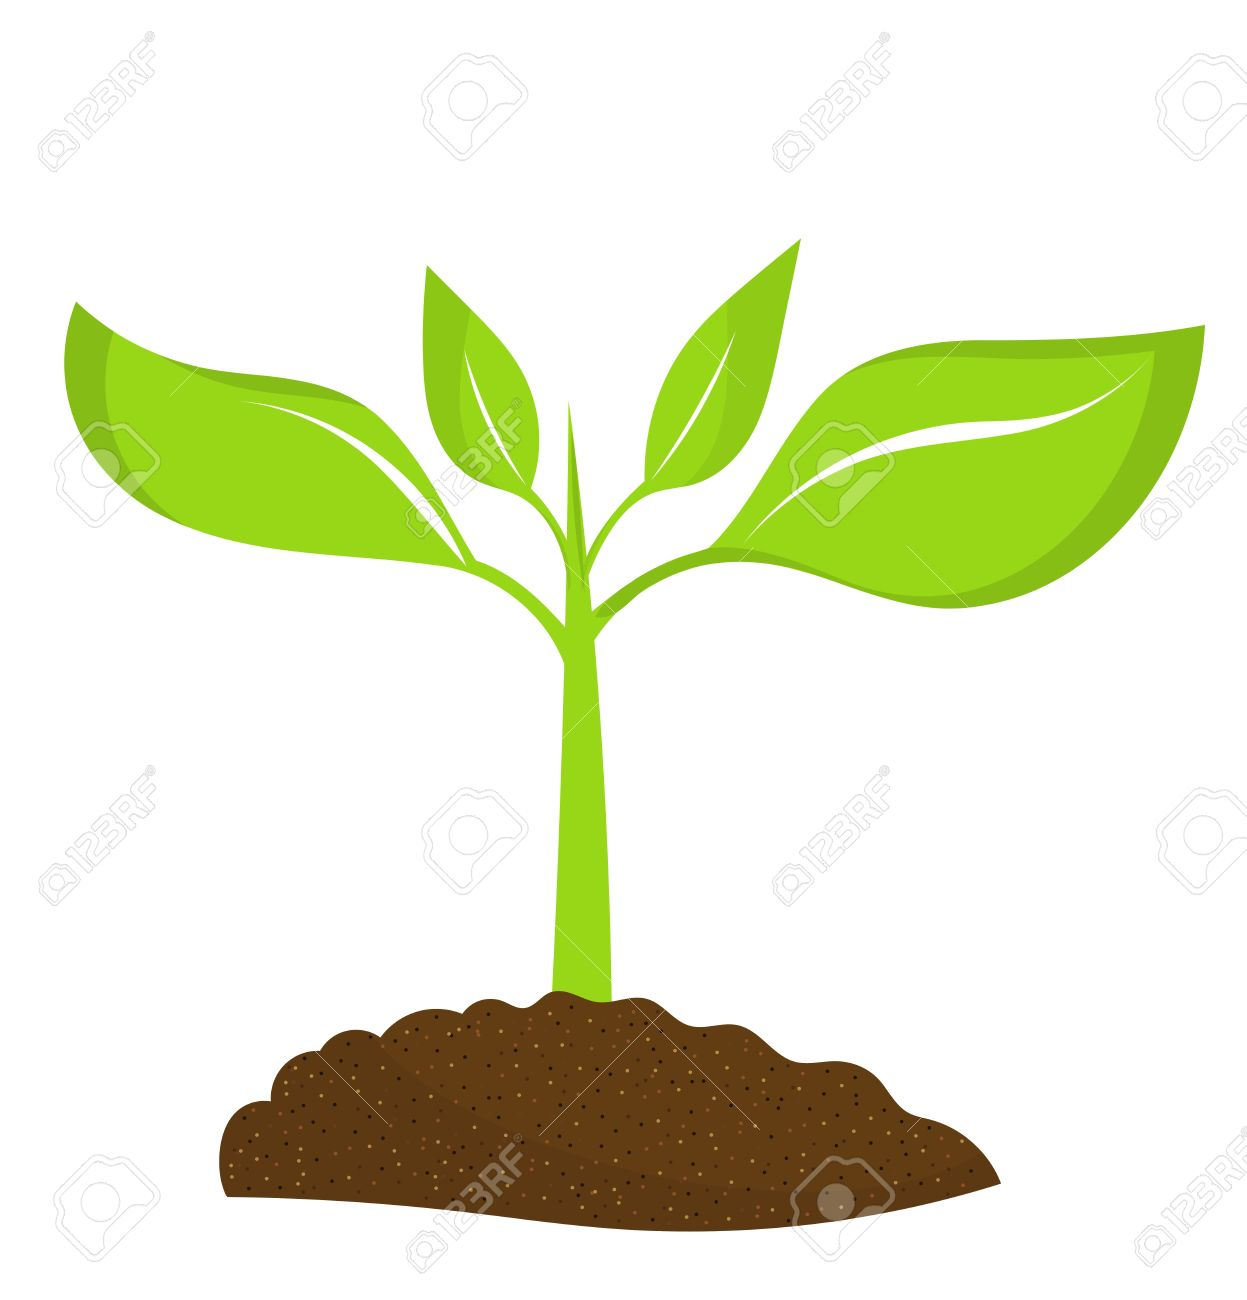 108 Seedling free clipart.